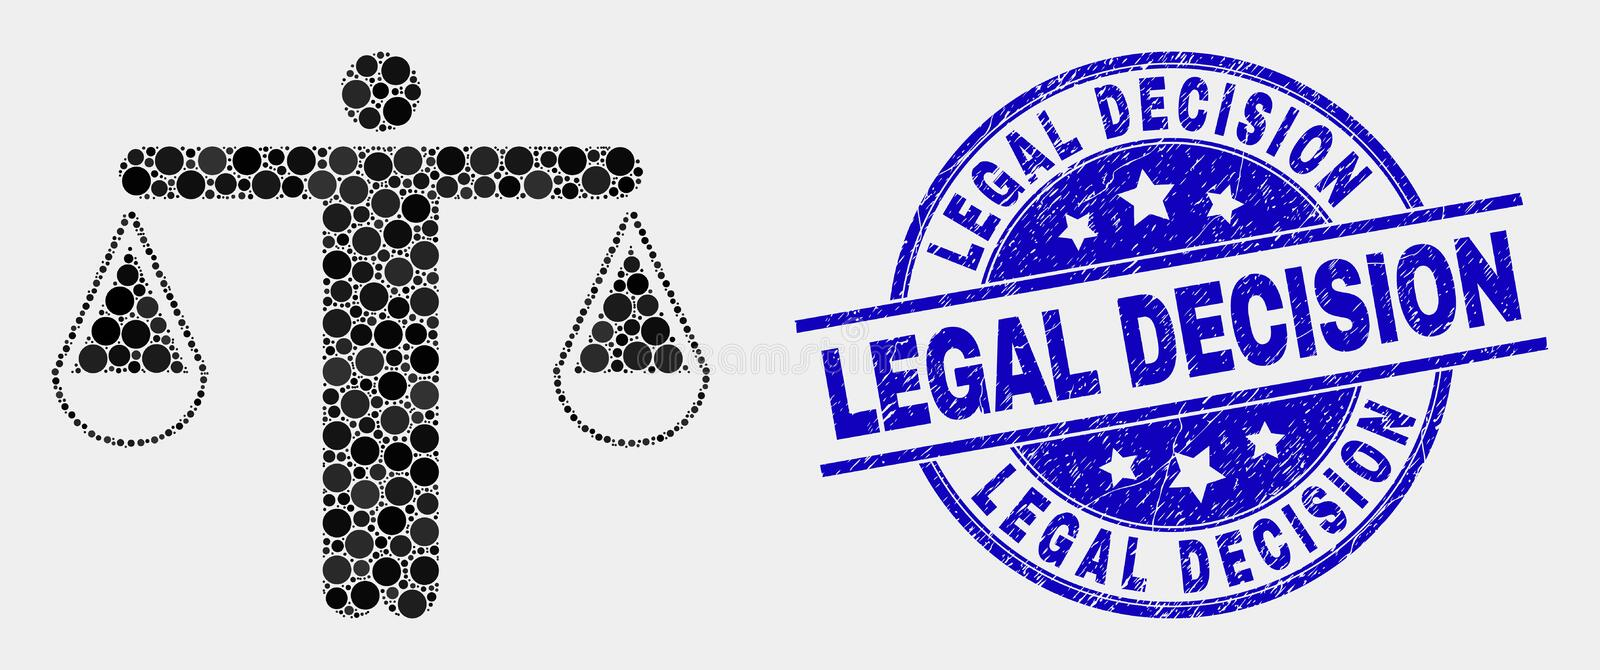 Vector Pixelated Judge Icon and Grunge Legal Decision Stamp Seal. Pixel judge mosaic icon and Legal Decision seal stamp. Blue vector round grunge seal with Legal vector illustration